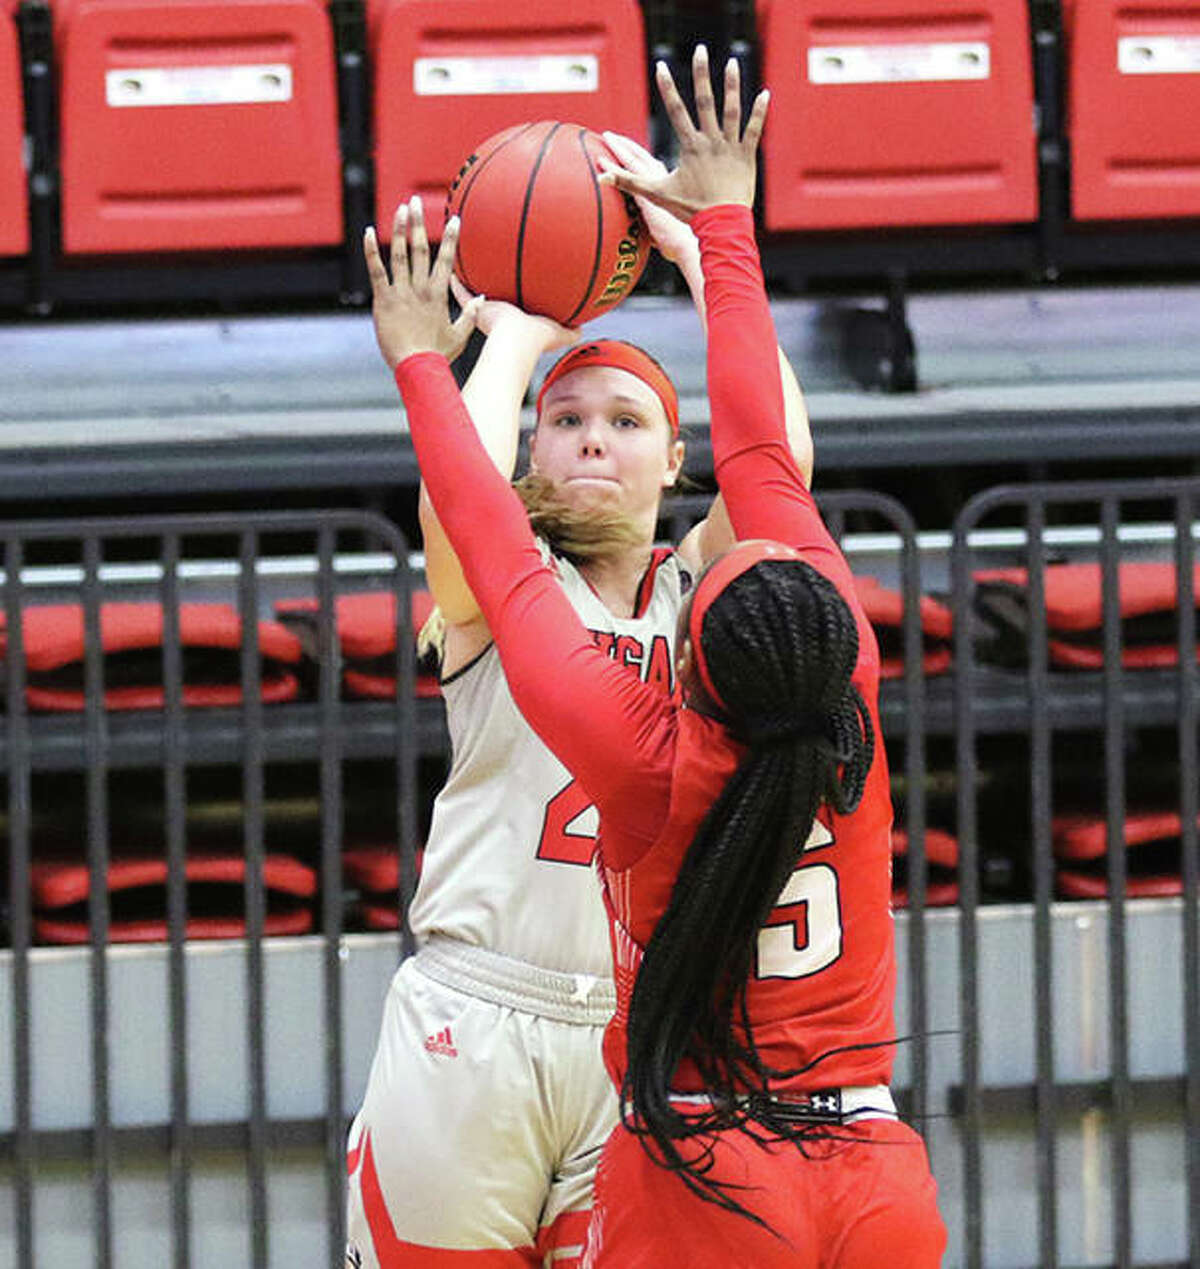 SIUE's Madison Hackstadt shoots a 3-pointer over Myah LeFlore on Thursday afternoon at First Community Arena in Edwardsville.